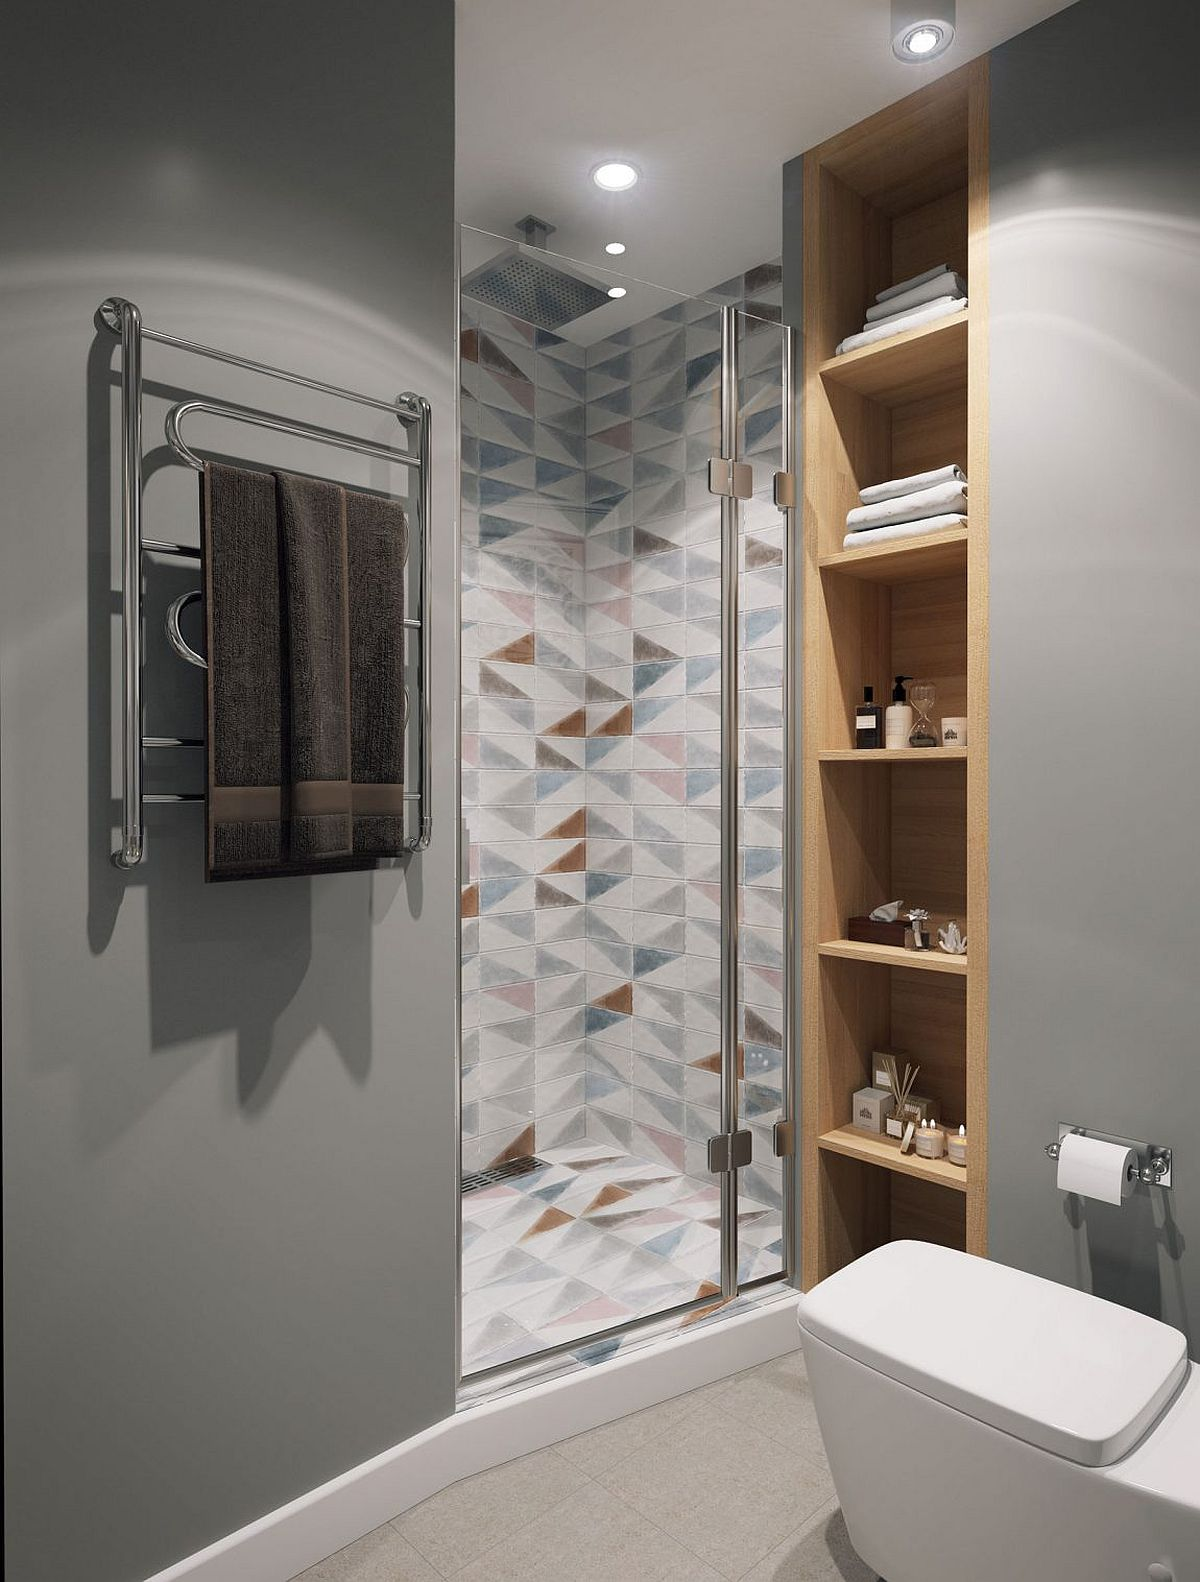 Geometric tiles bring pattern to the small bathroom in gray